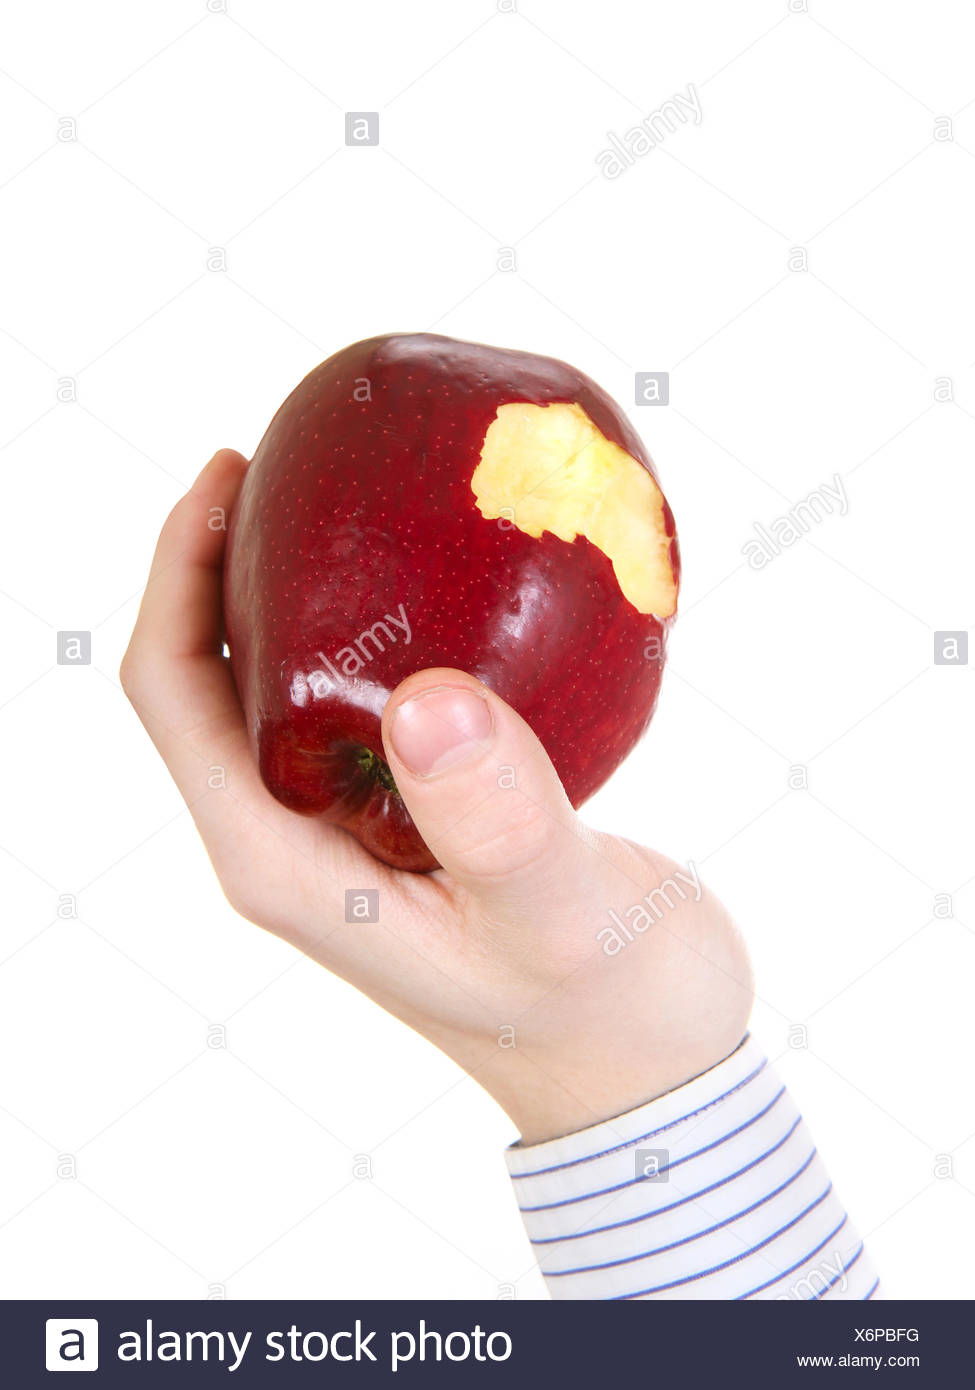 Core of an Apple - Stock Image